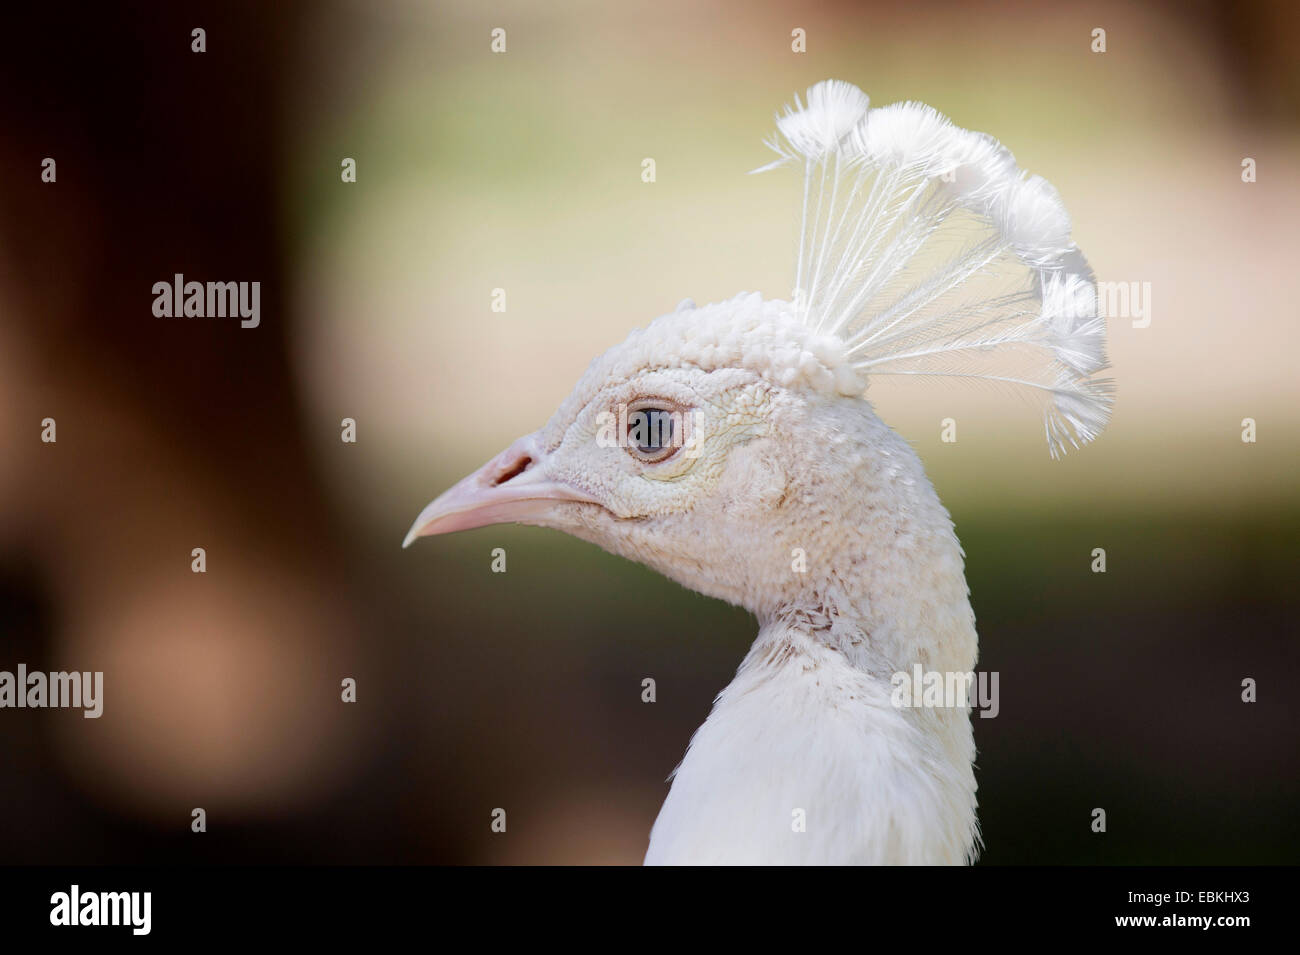 common peafowl, Indian peafowl, blue peafowl (Pavo cristatus), albino, portrait - Stock Image